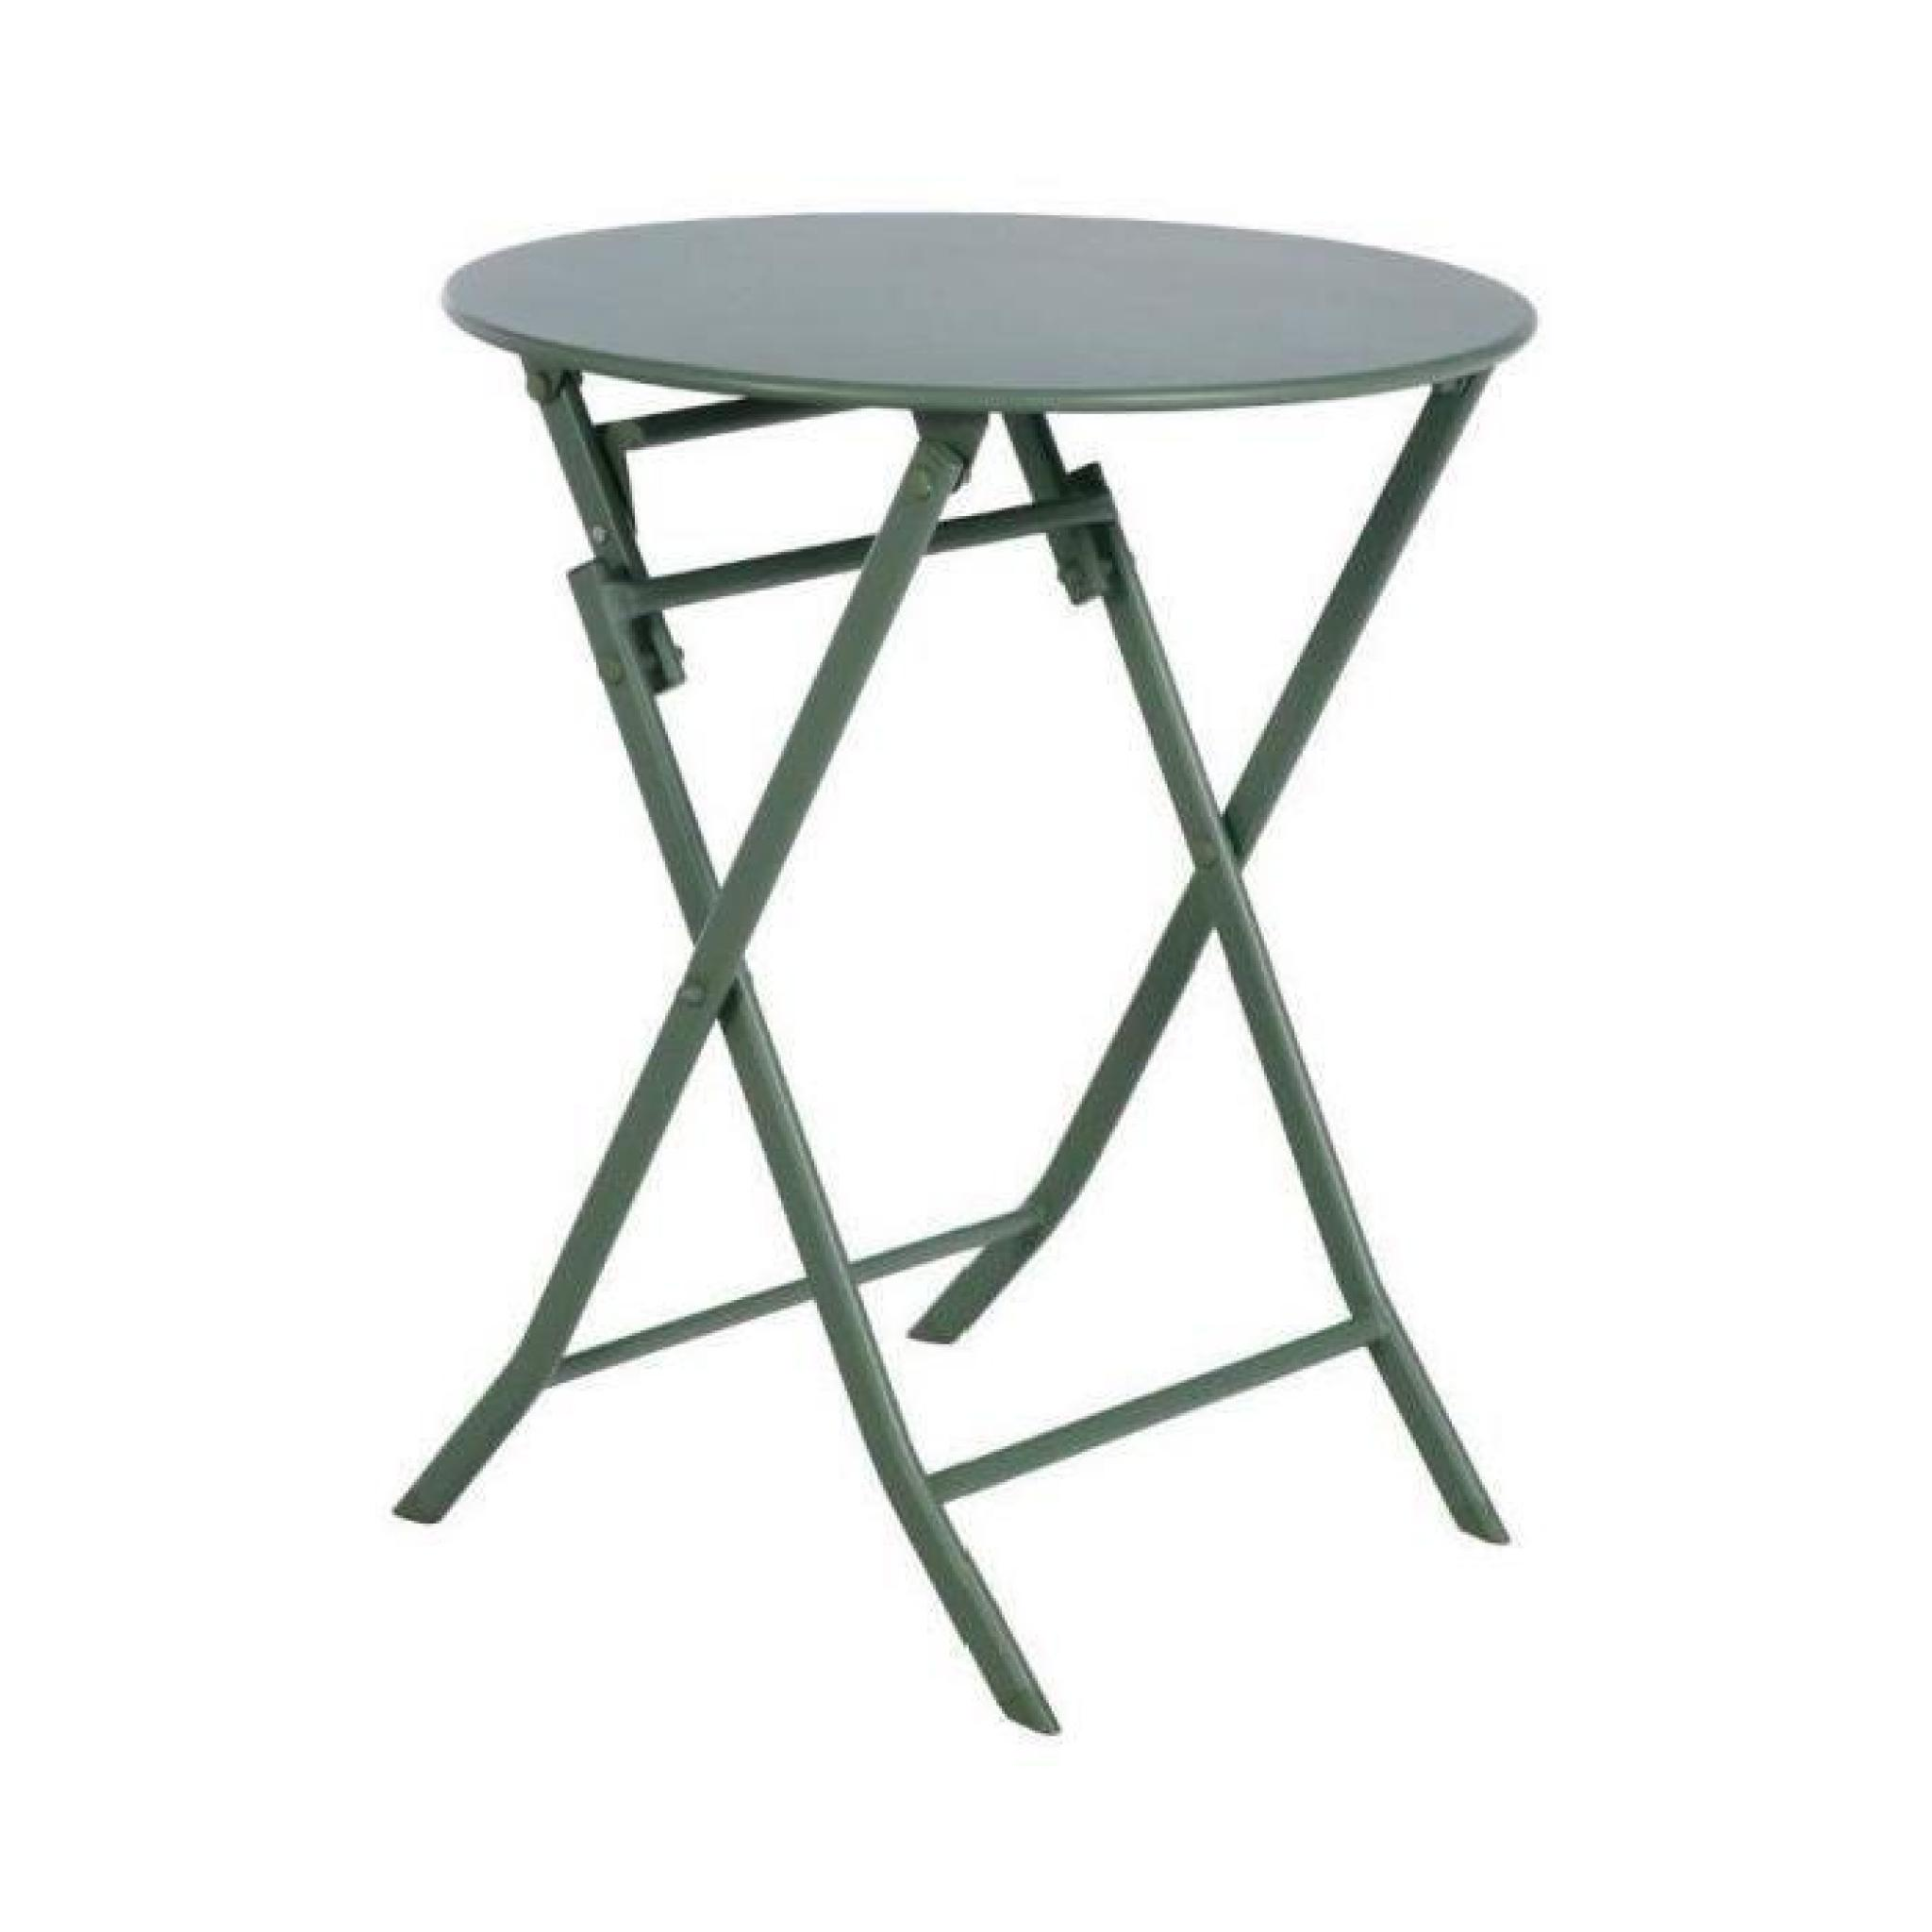 Table Pliante De Jardin Pas Cher Table Pliante Greensboro Hesperide Ronde Kaki